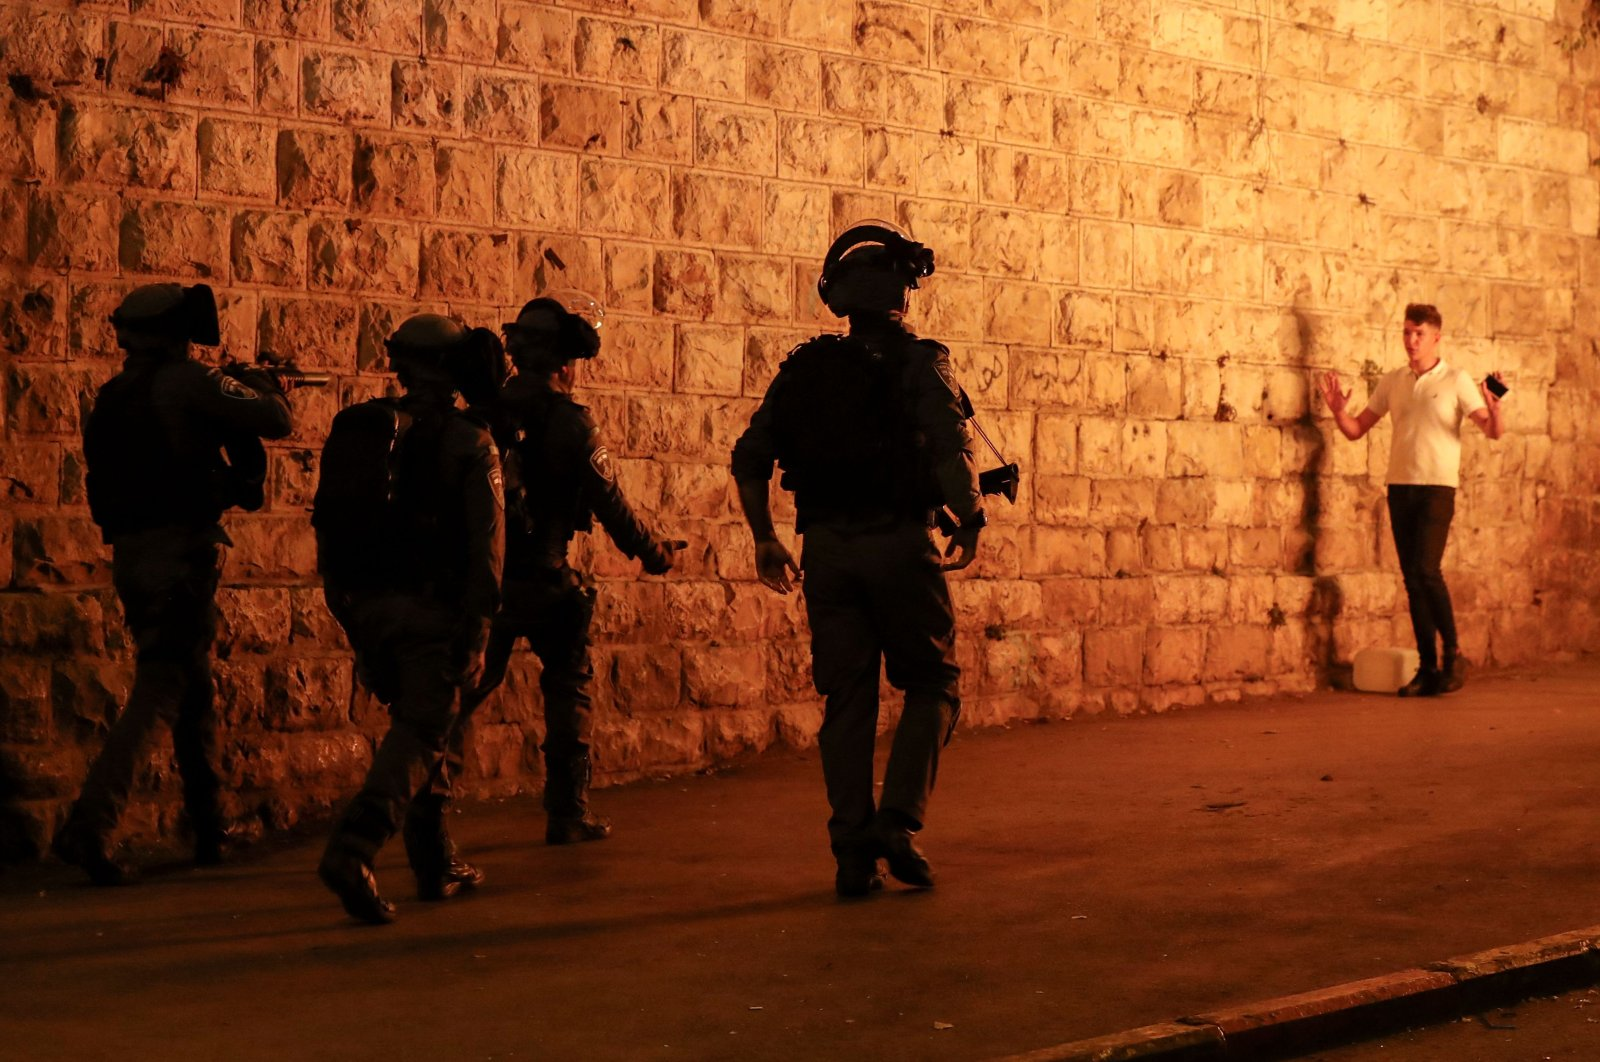 Israeli security forces approach a Palestinian protester outside the Damascus Gate in Jerusalem's Old City, April 23, 2021. (AFP Photo)